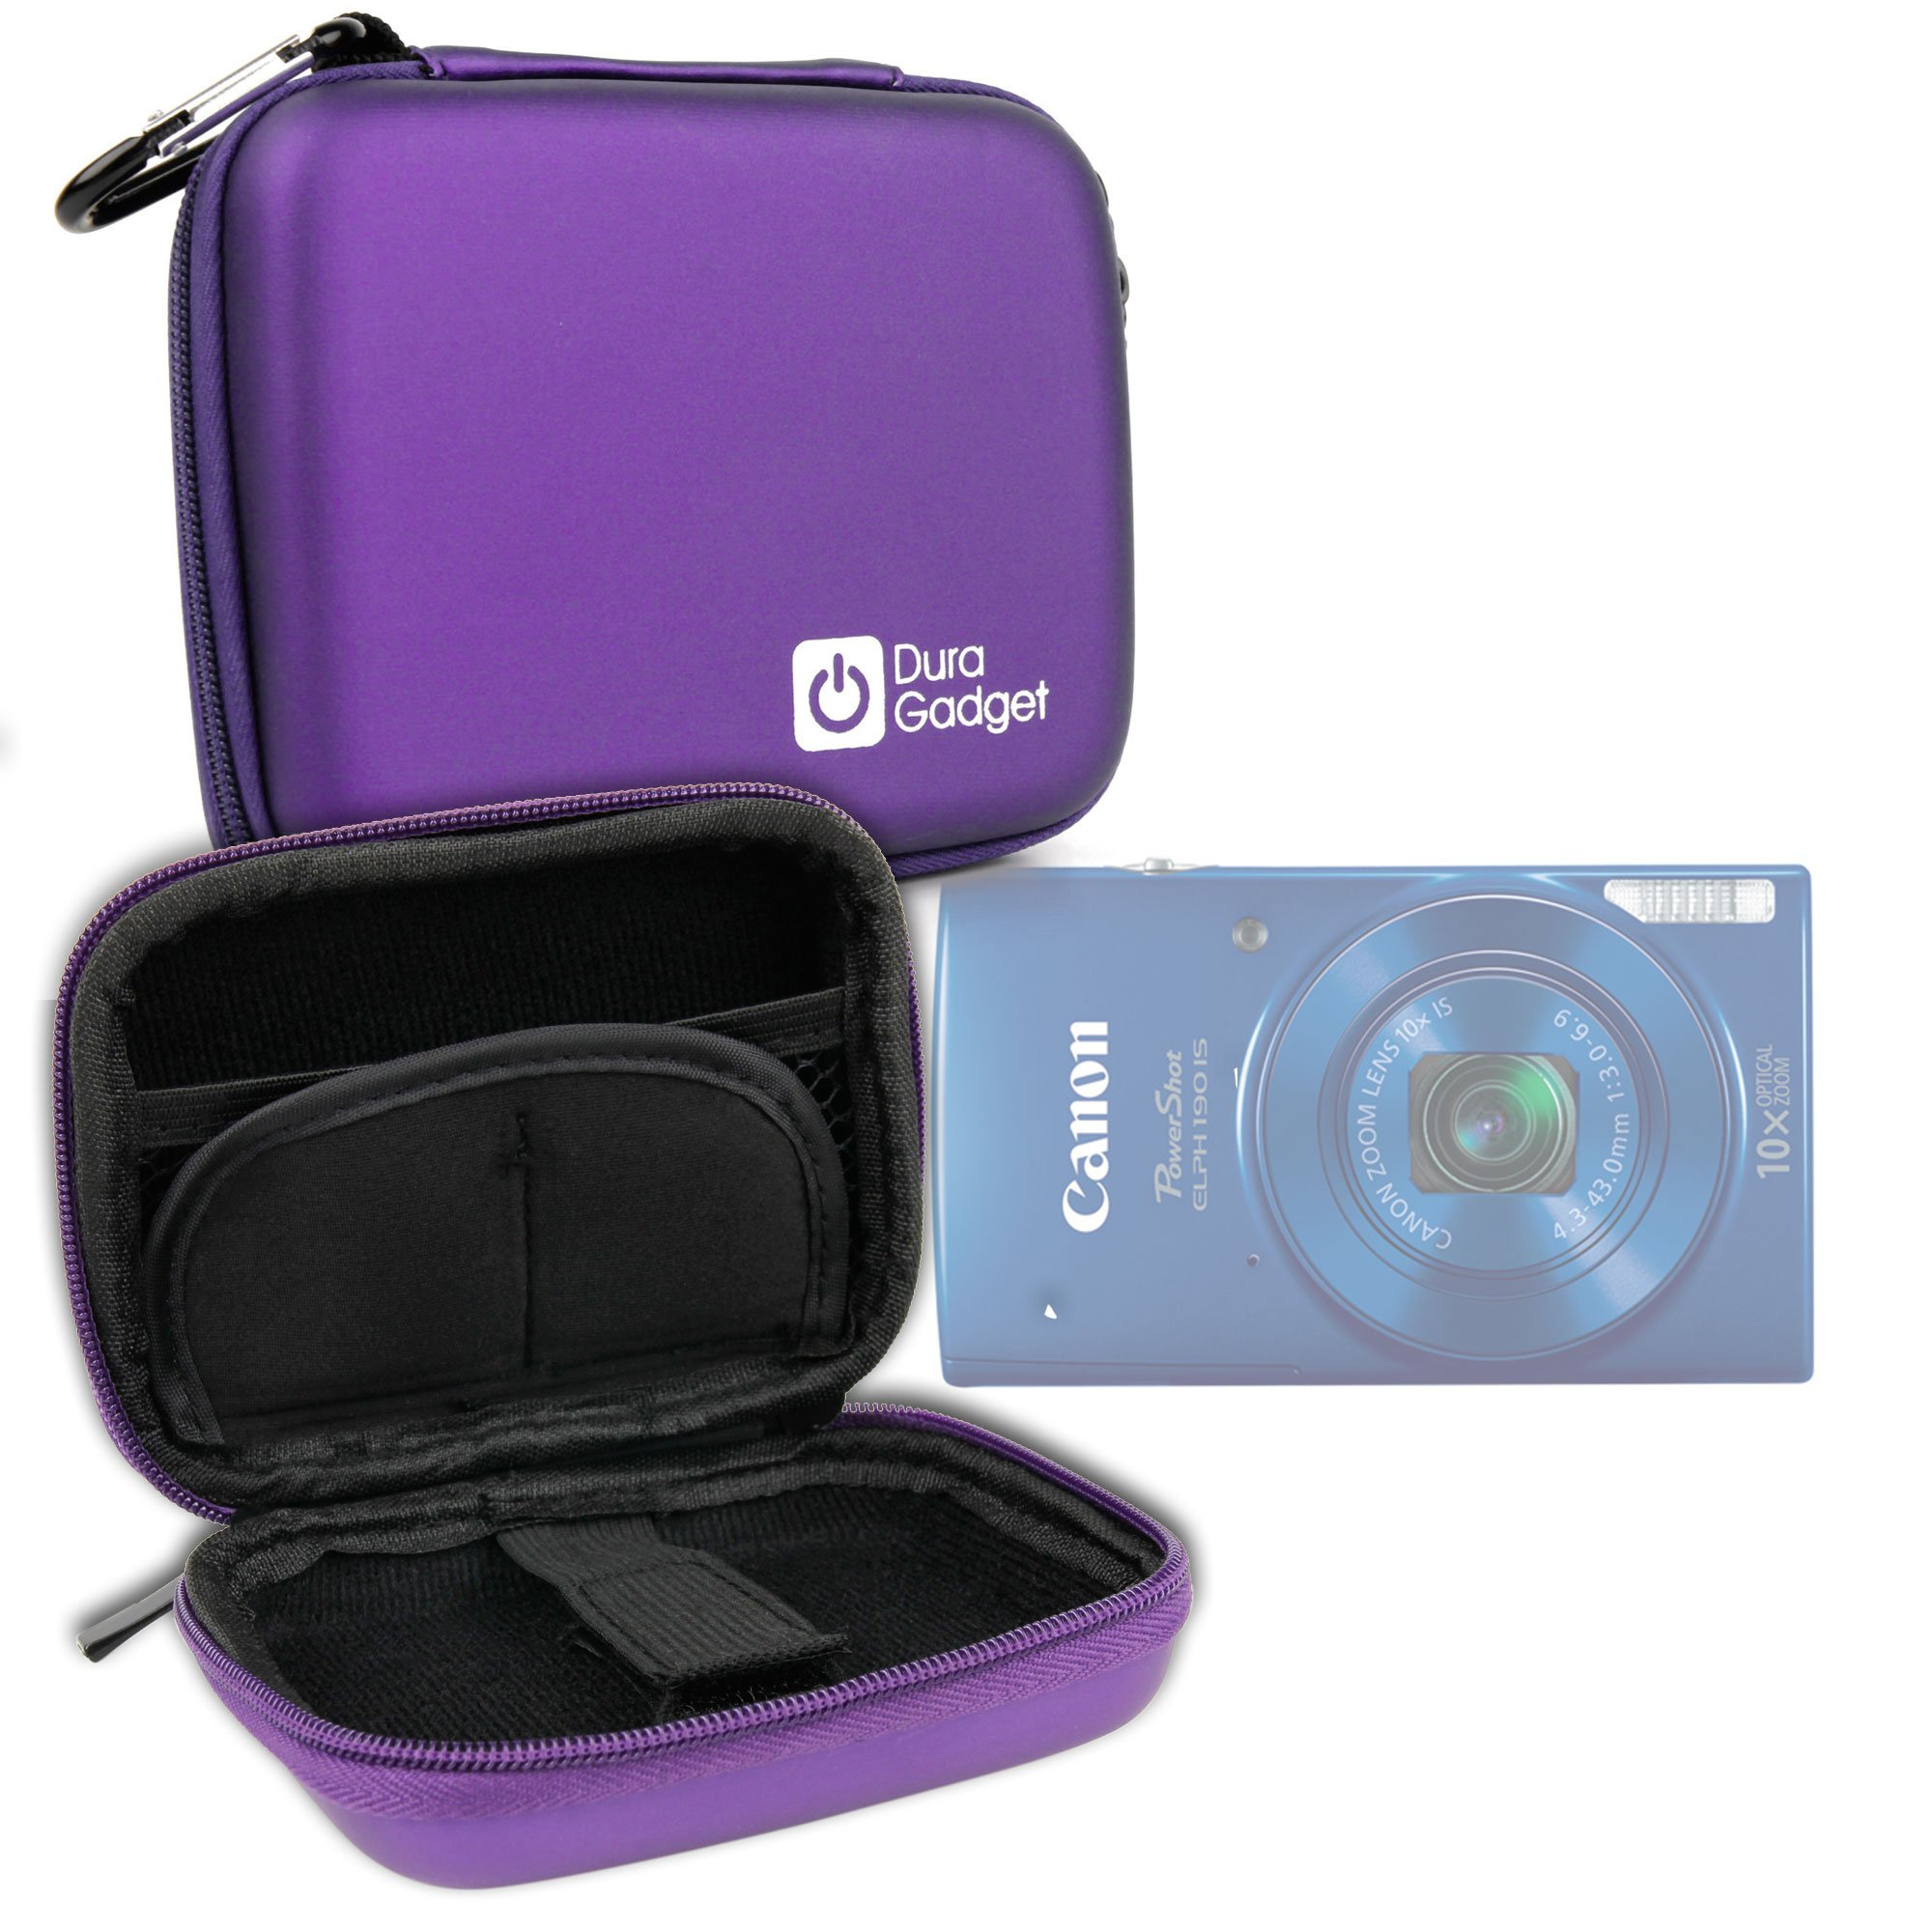 DURAGADGET Premium Quality Shock Absorbent Purple Hard Shell Case - Suitable for The Canon Powershot ELPH 360 HS| Powershot ELPH 300| Powershot ELPH 180| Powershot ELPH 190 is| by DURAGADGET